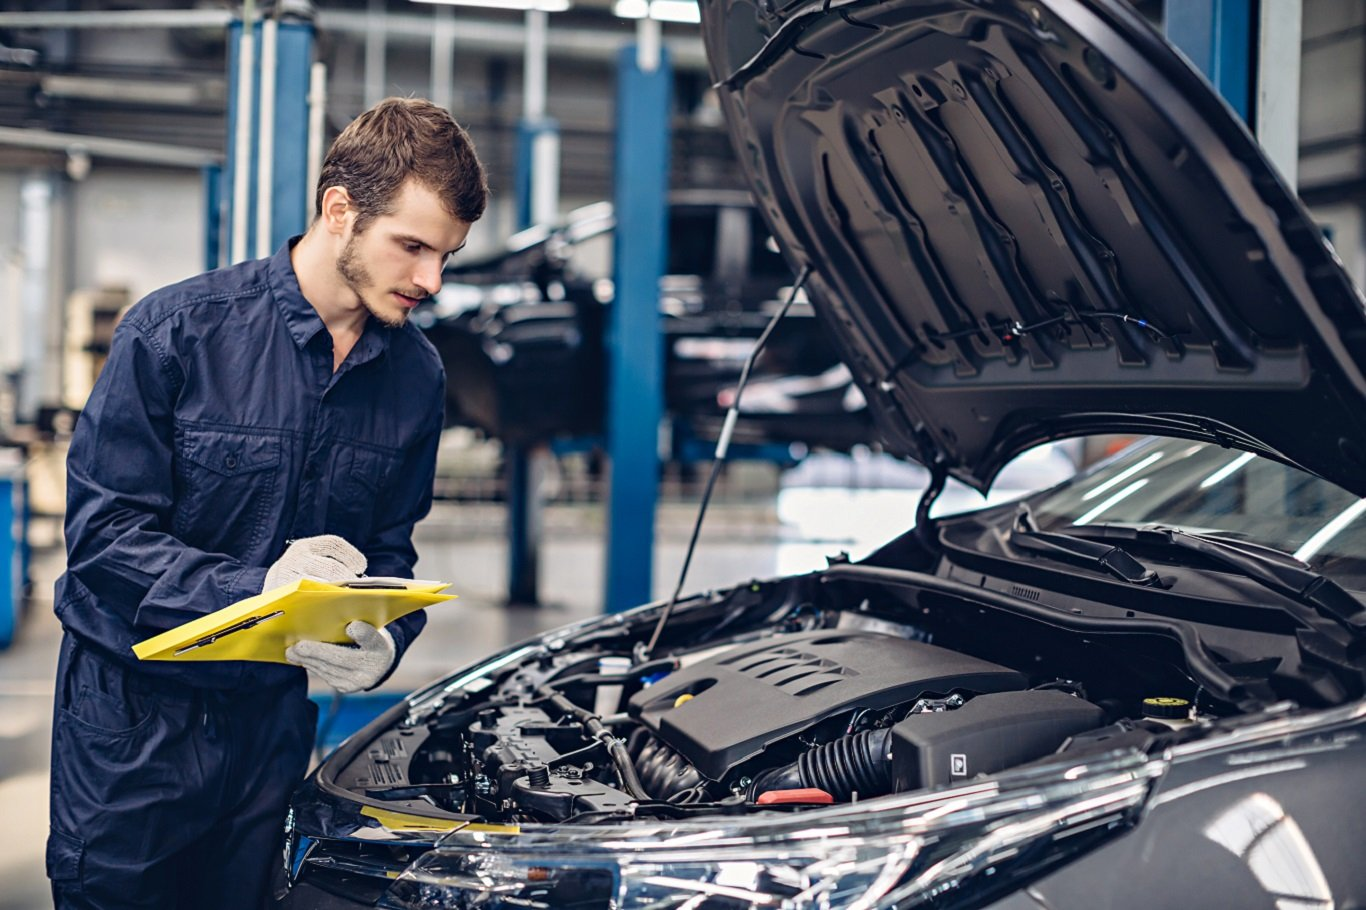 Car Repair Insurance: What Is the Best Car Repair Insurance?